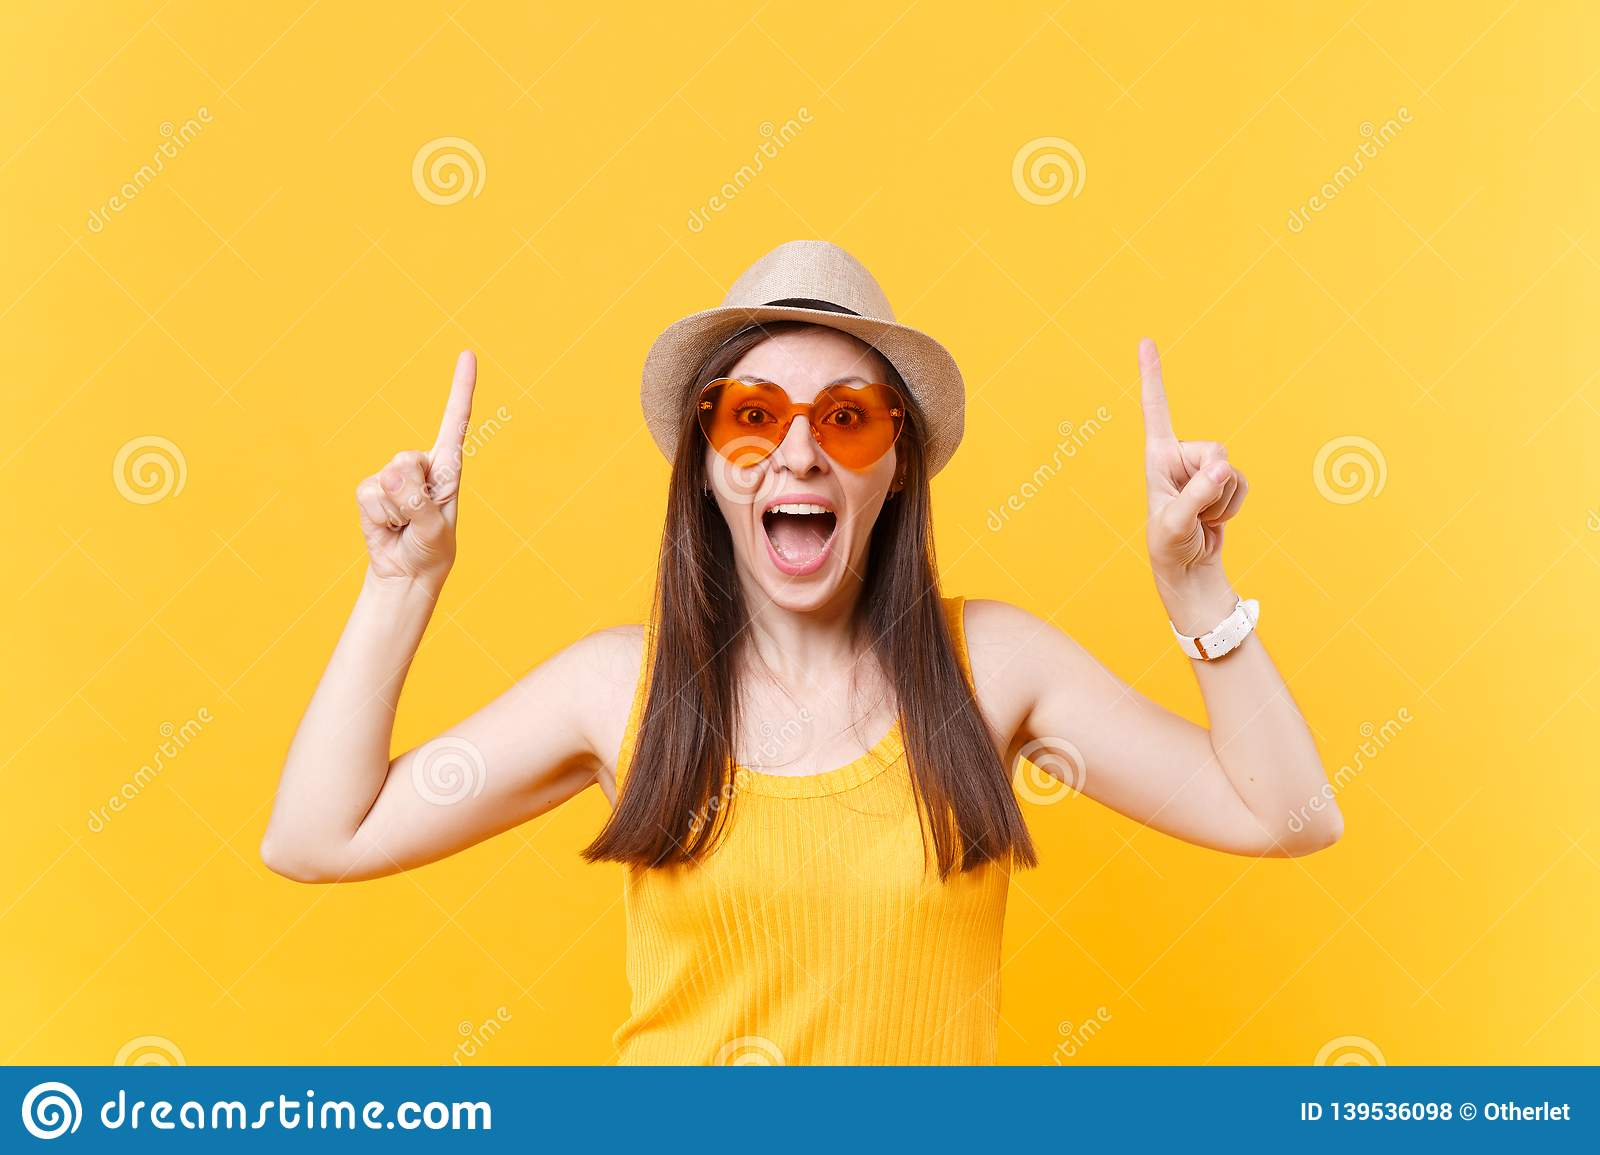 Portrait of smiling young woman in straw summer hat, orange glasses pointing index fingers up on copy space isolated on